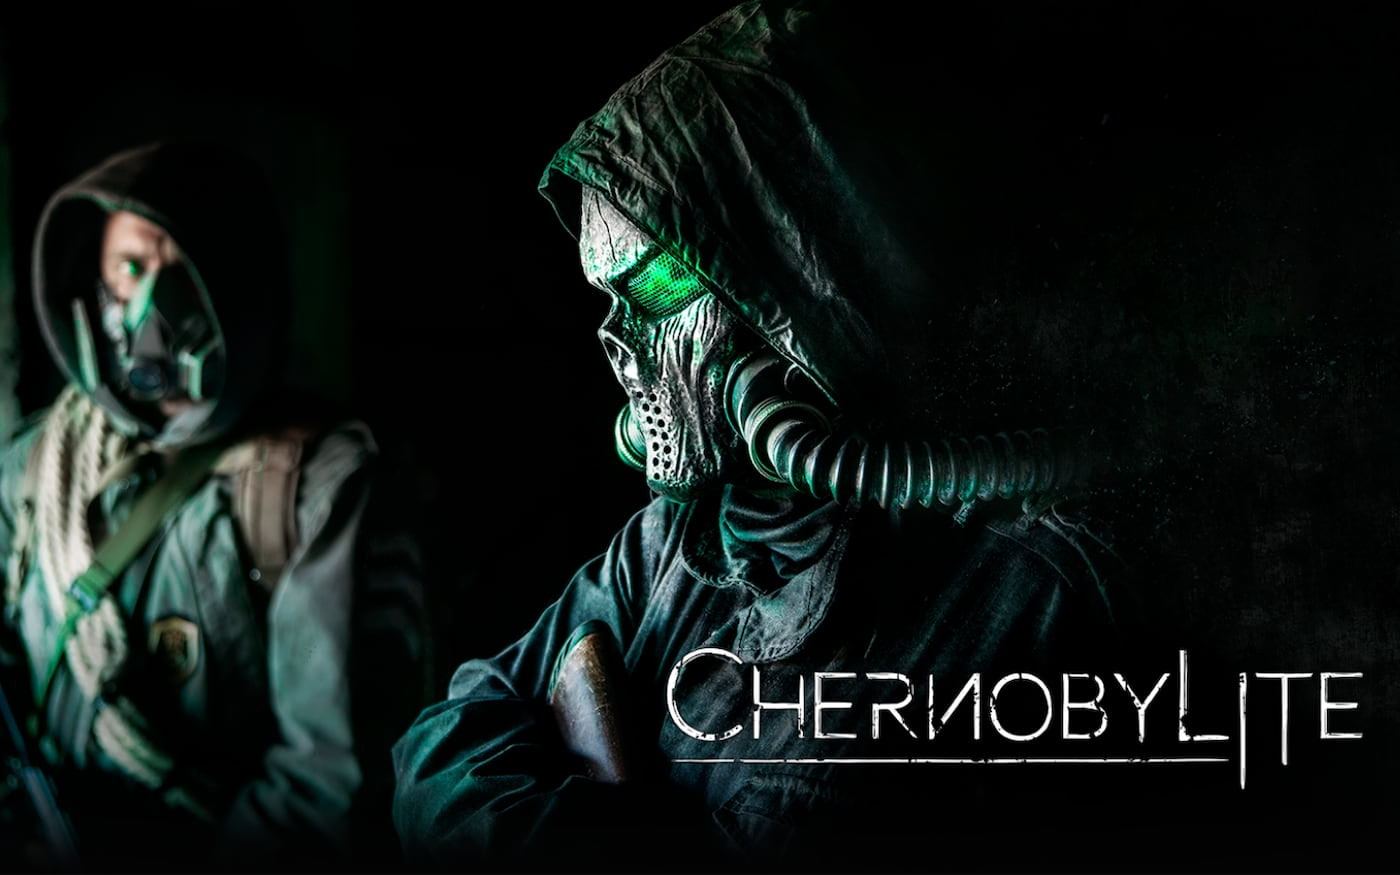 [Chernobylite] The Farm 51 revela trailer que compara cenas reais de Chernobyl com as do game